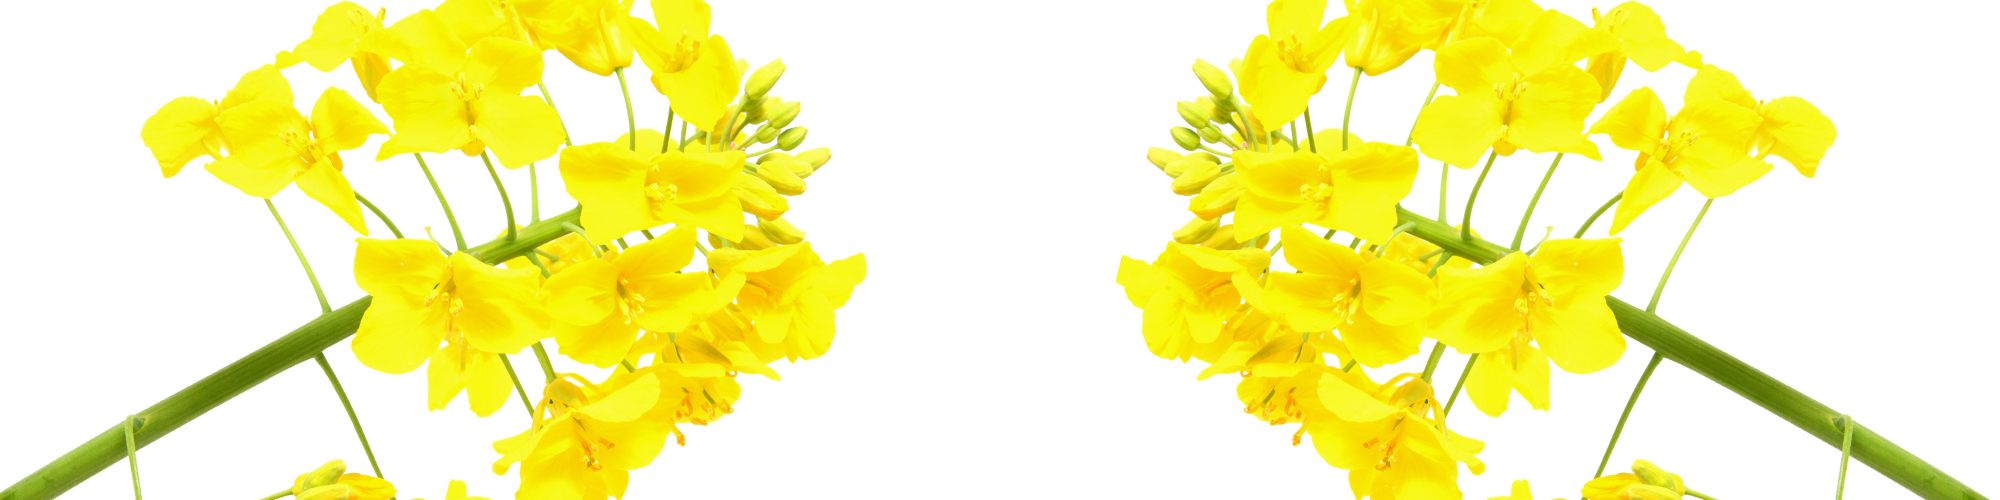 Rapeseed clipart #3, Download drawings